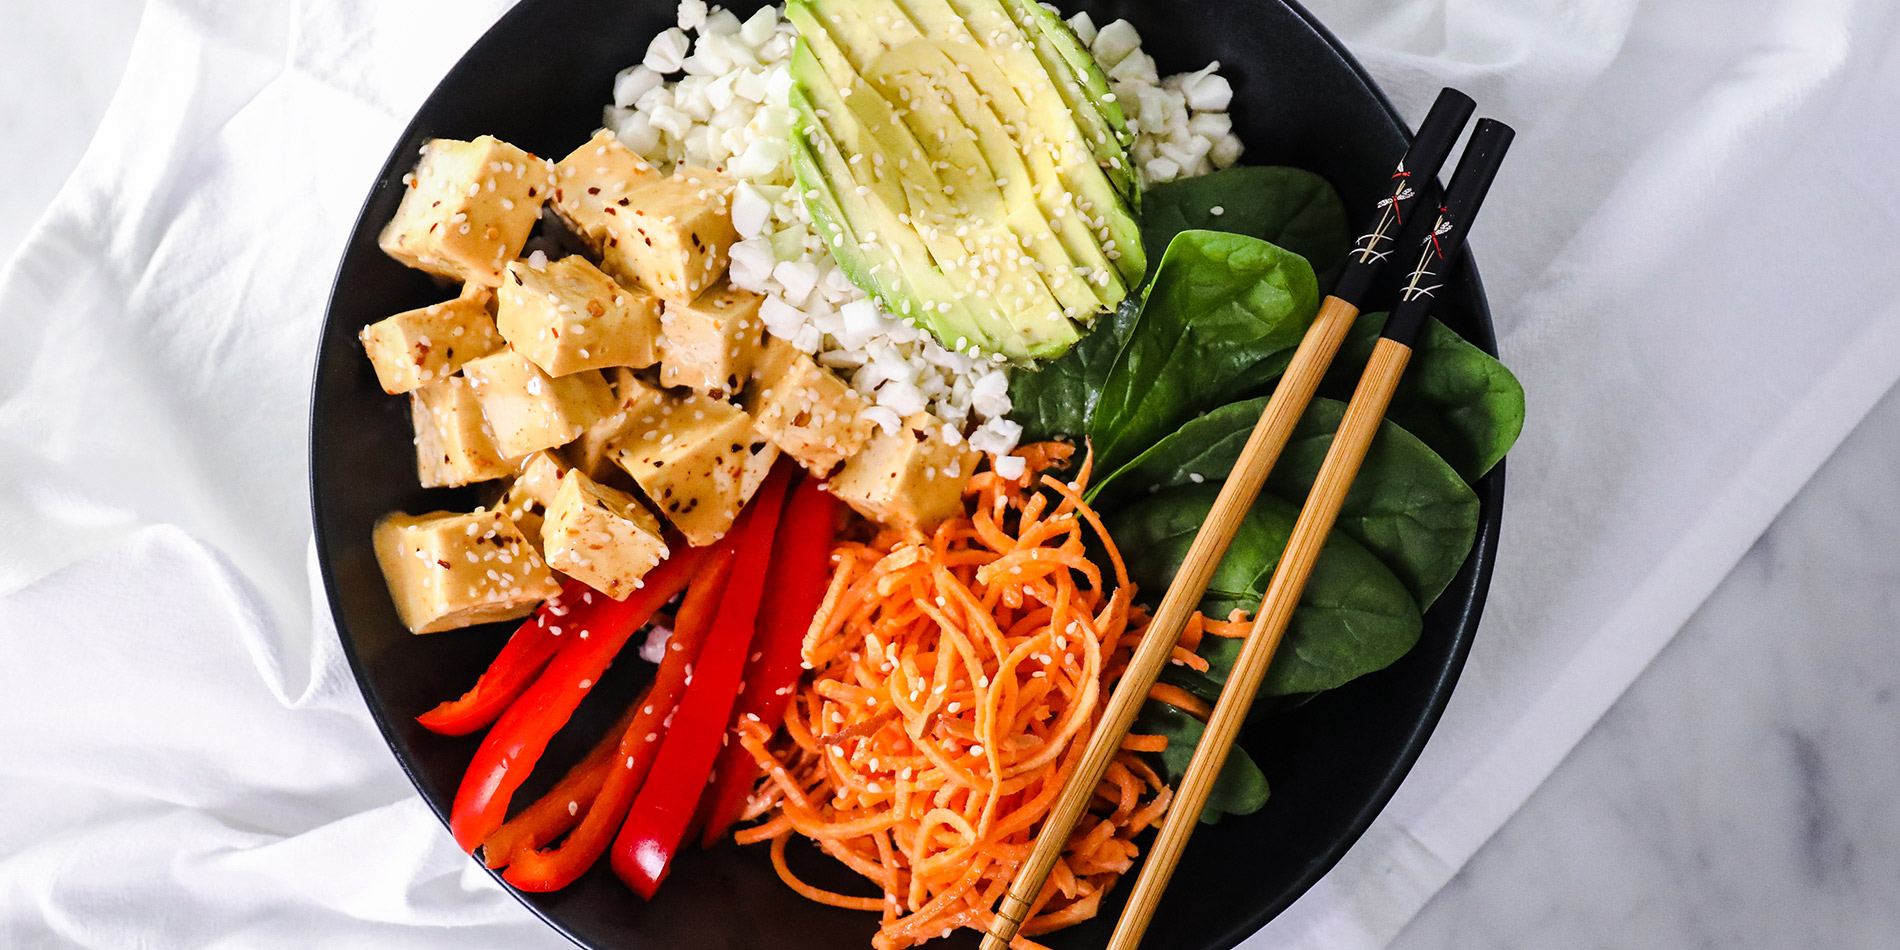 Thai Peanut Tofu Bowl in a black bowl with chopsticks from the top view on a white background with a white cloth